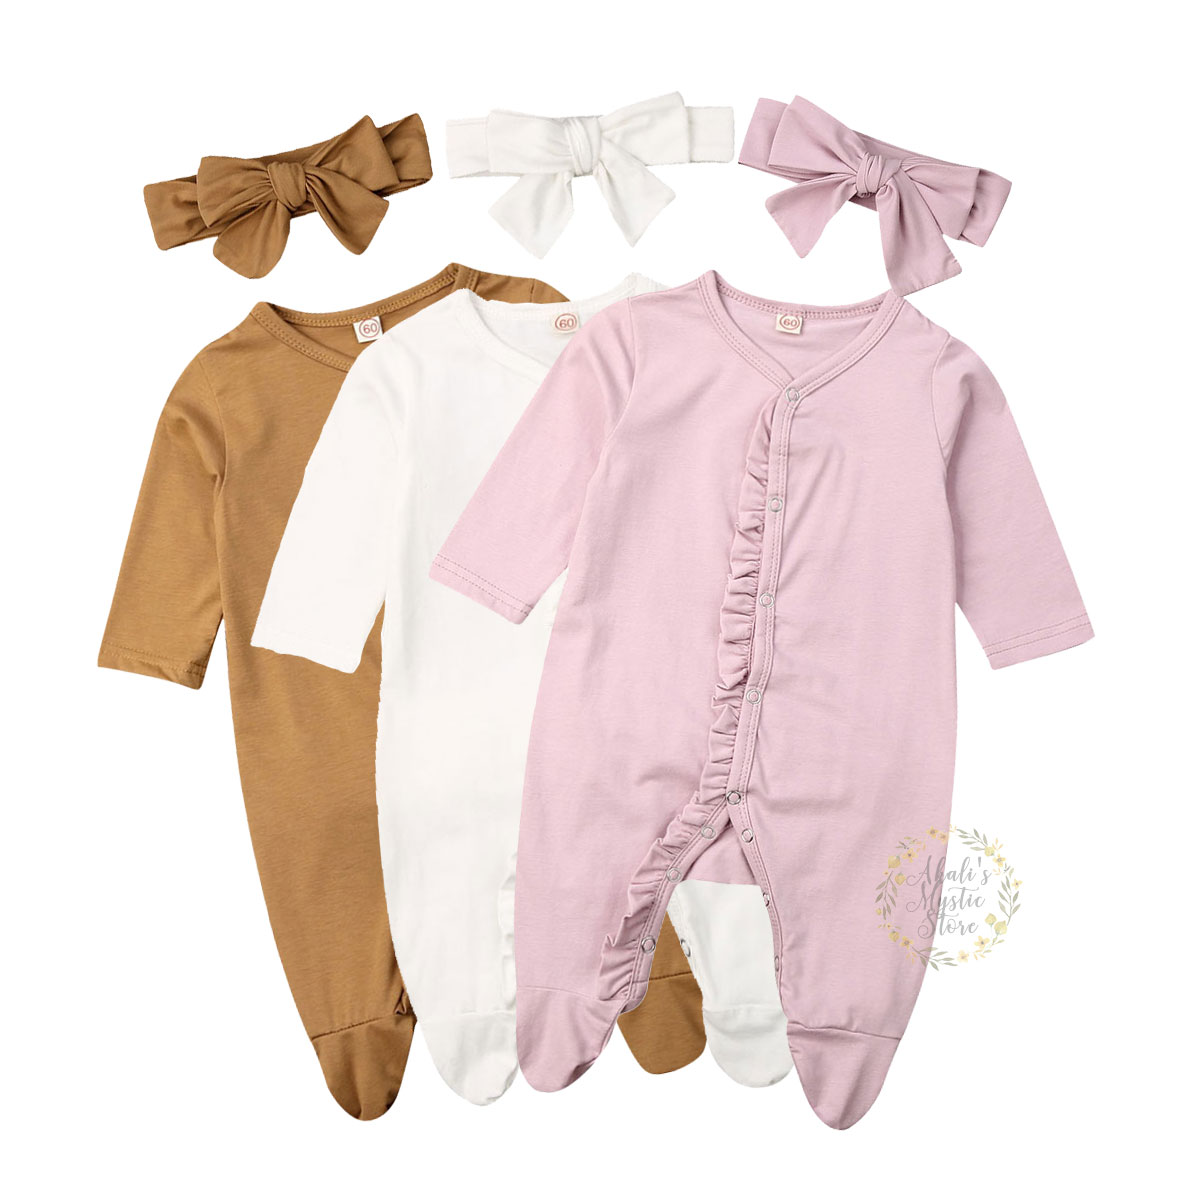 0-12M Newborn Infant Baby Boy Girl Ruffles Romper Long Sleeve Soft Jumpsuit Autumn Spring Baby Girl Solid Costumes Baby Clothes